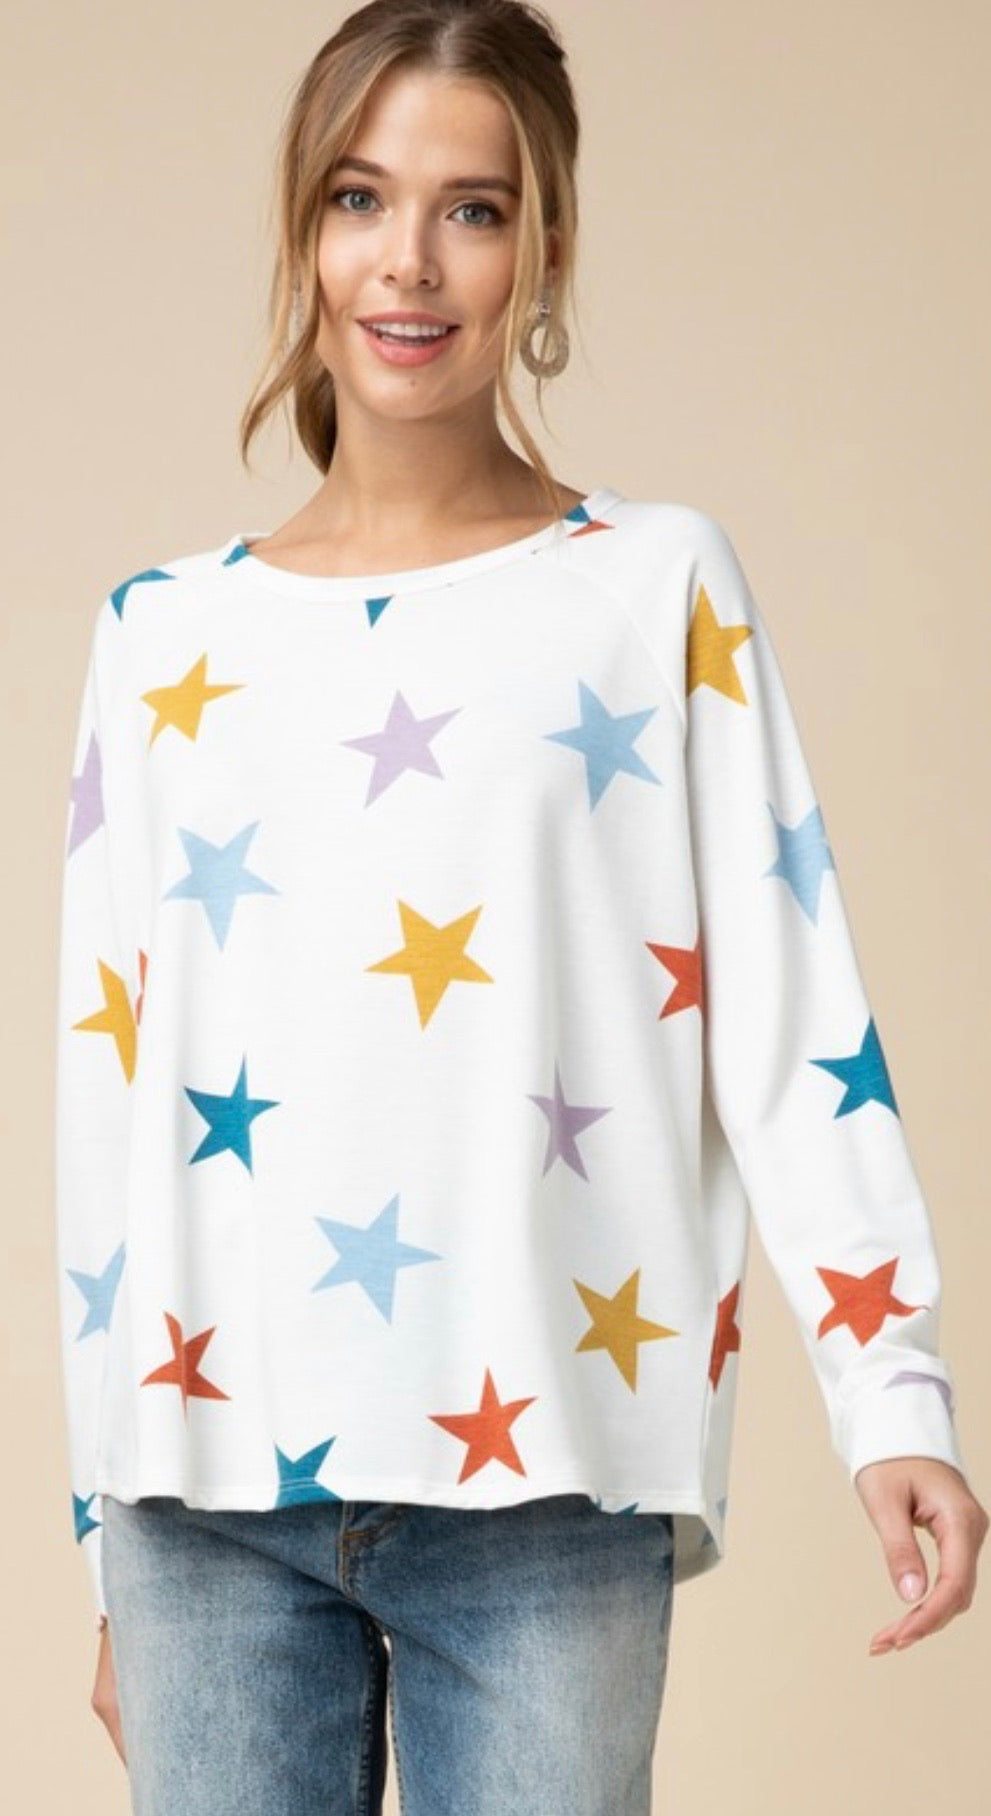 A Star is Born Top | Cheeky Cactus